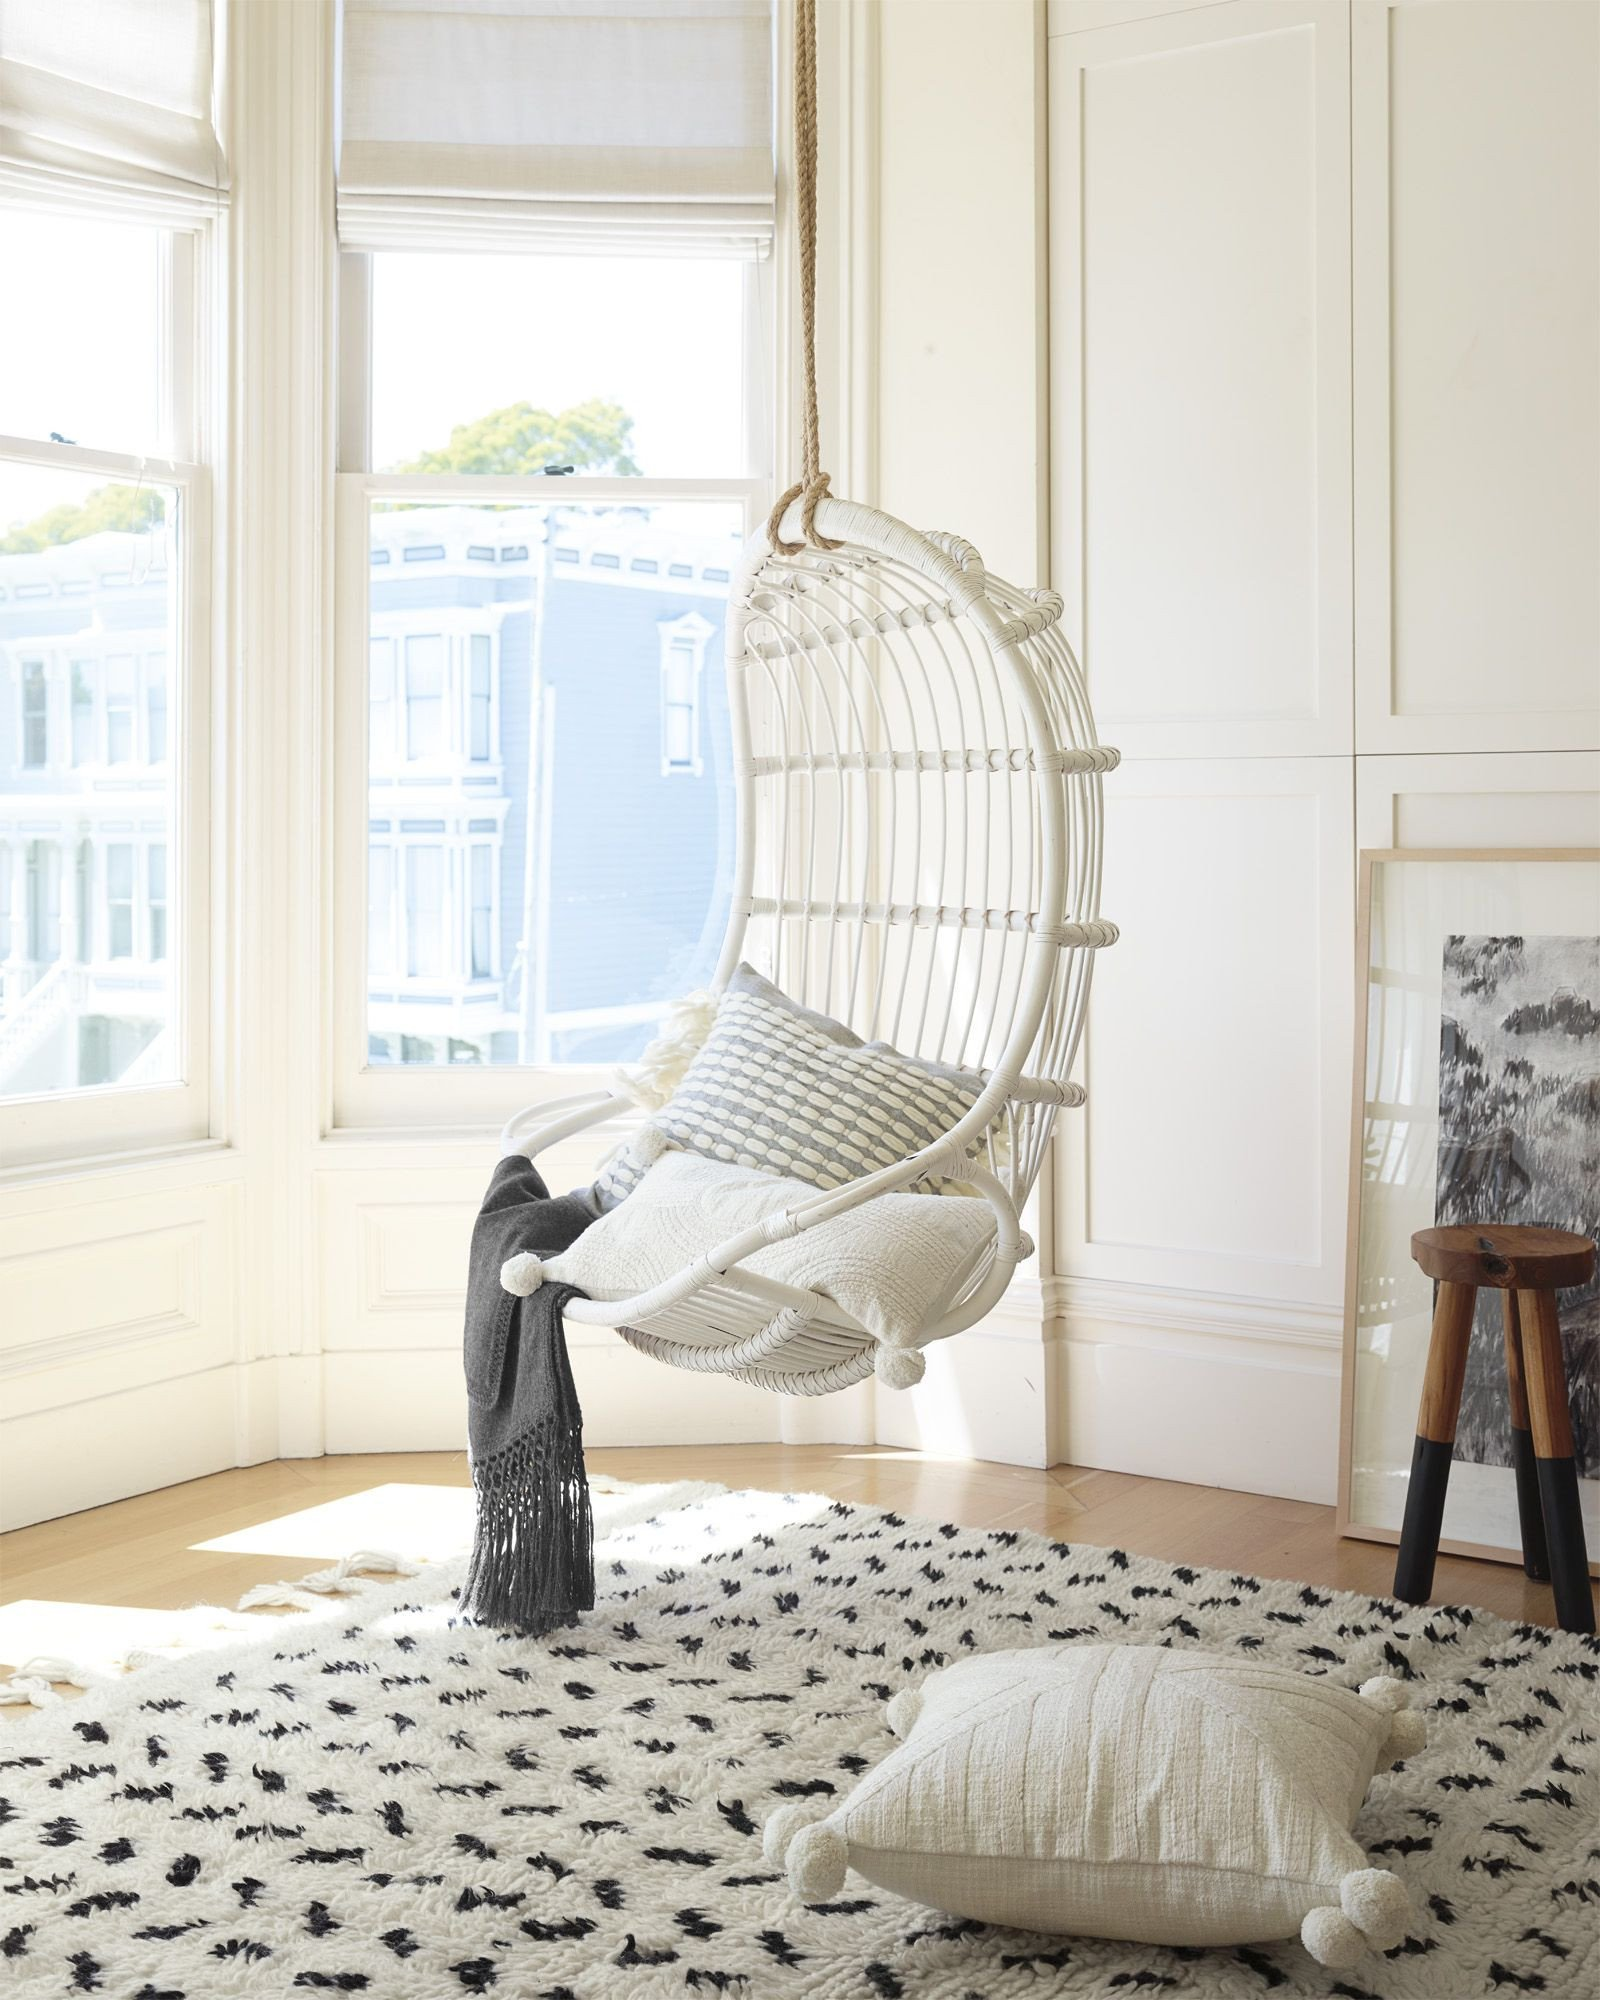 Indoor Hanging Chair for Bedroom Fresh Hanging Rattan Chair Ch27 01